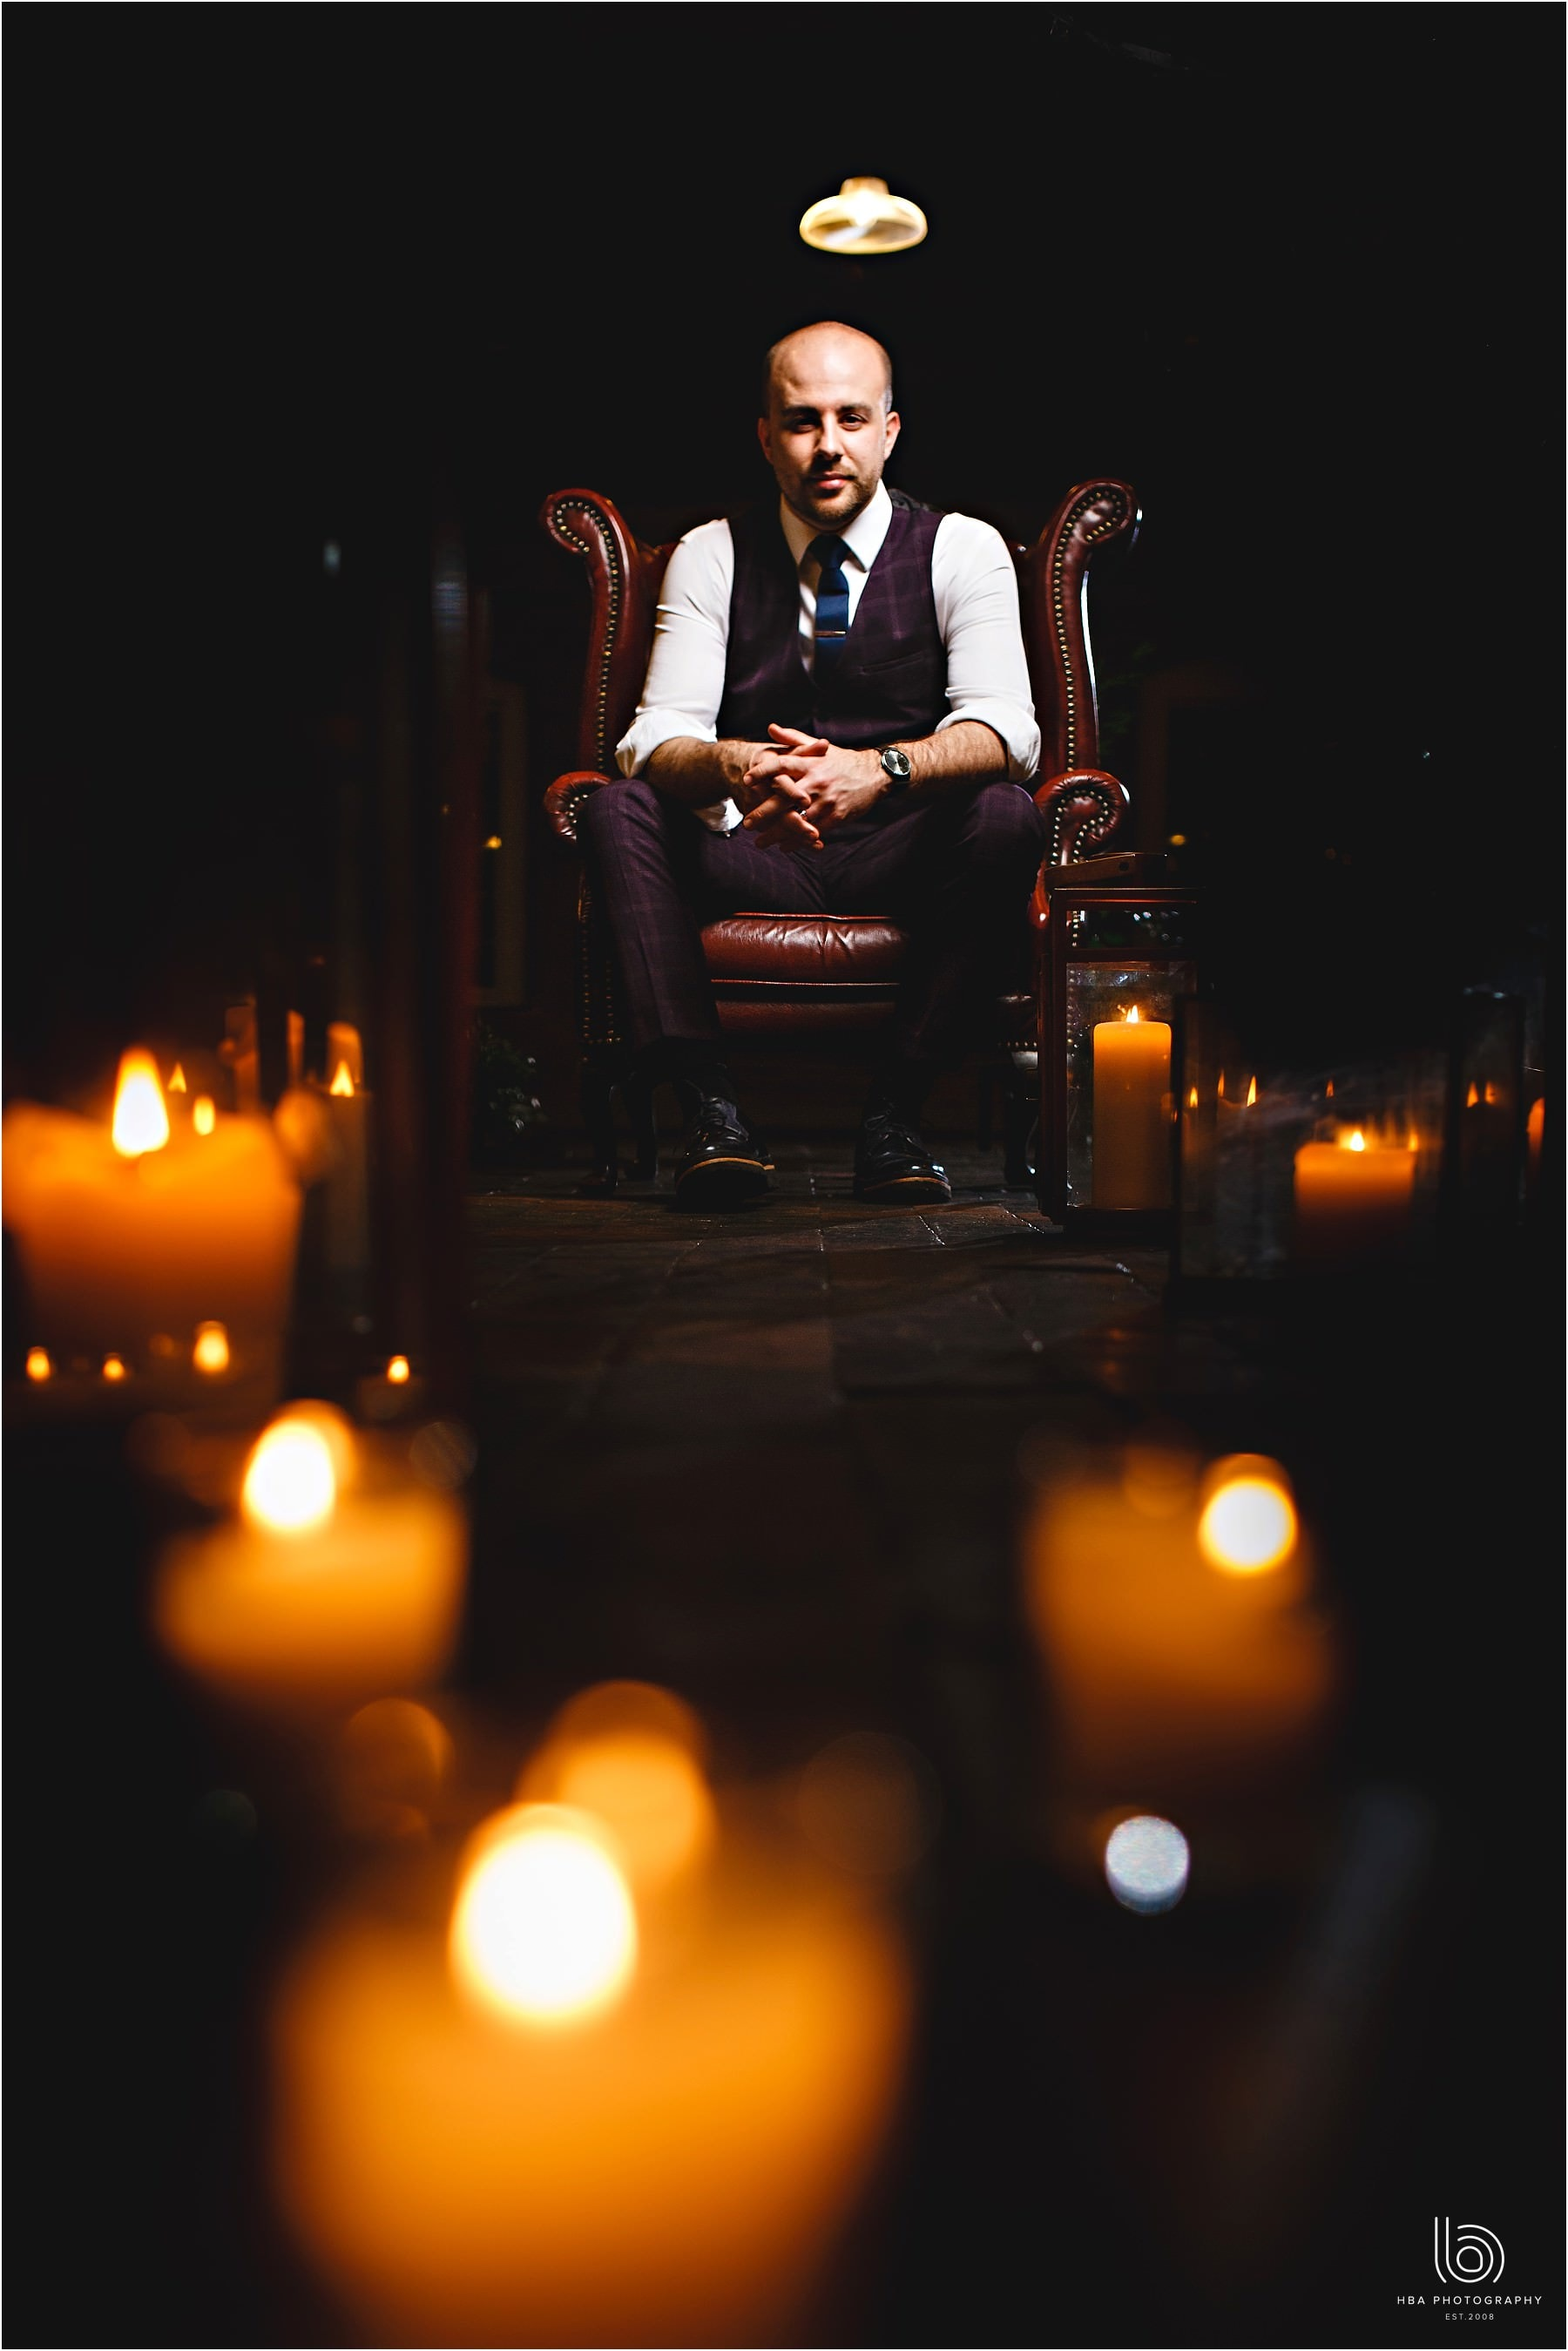 the groom surrounded by candles